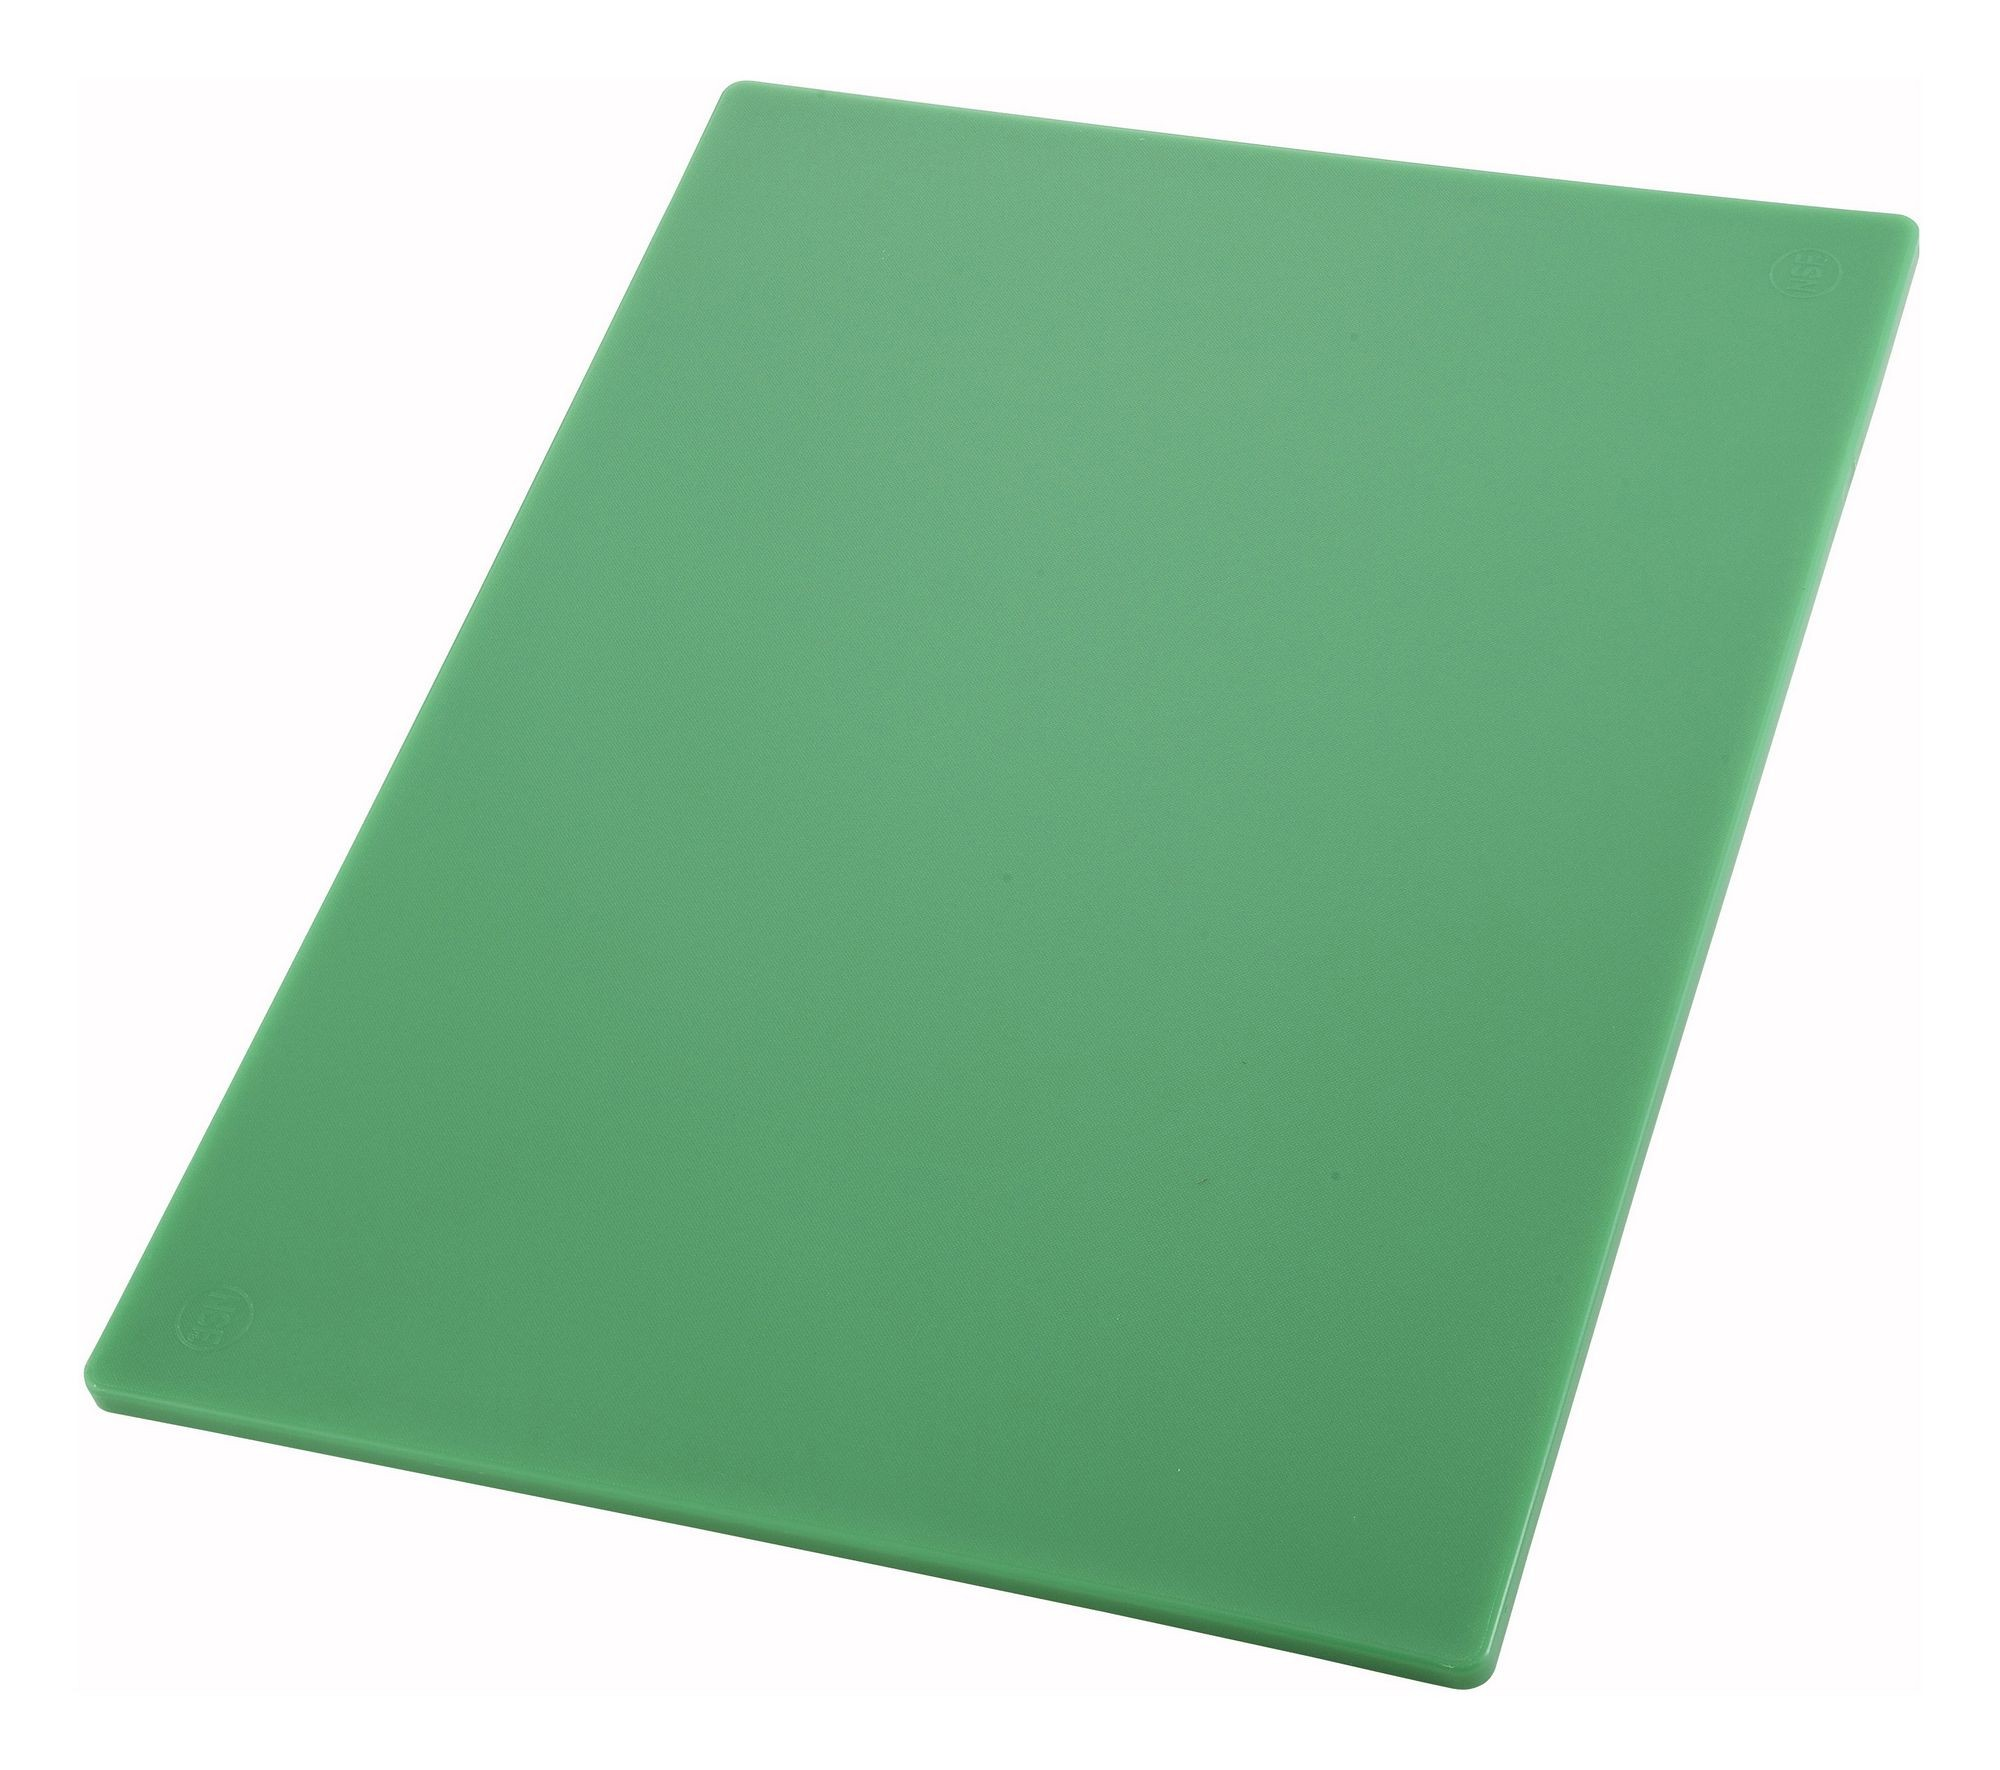 "Winco CBGR-1824 Green Plastic Cutting Board 18"" x 24"" x 1/2"""